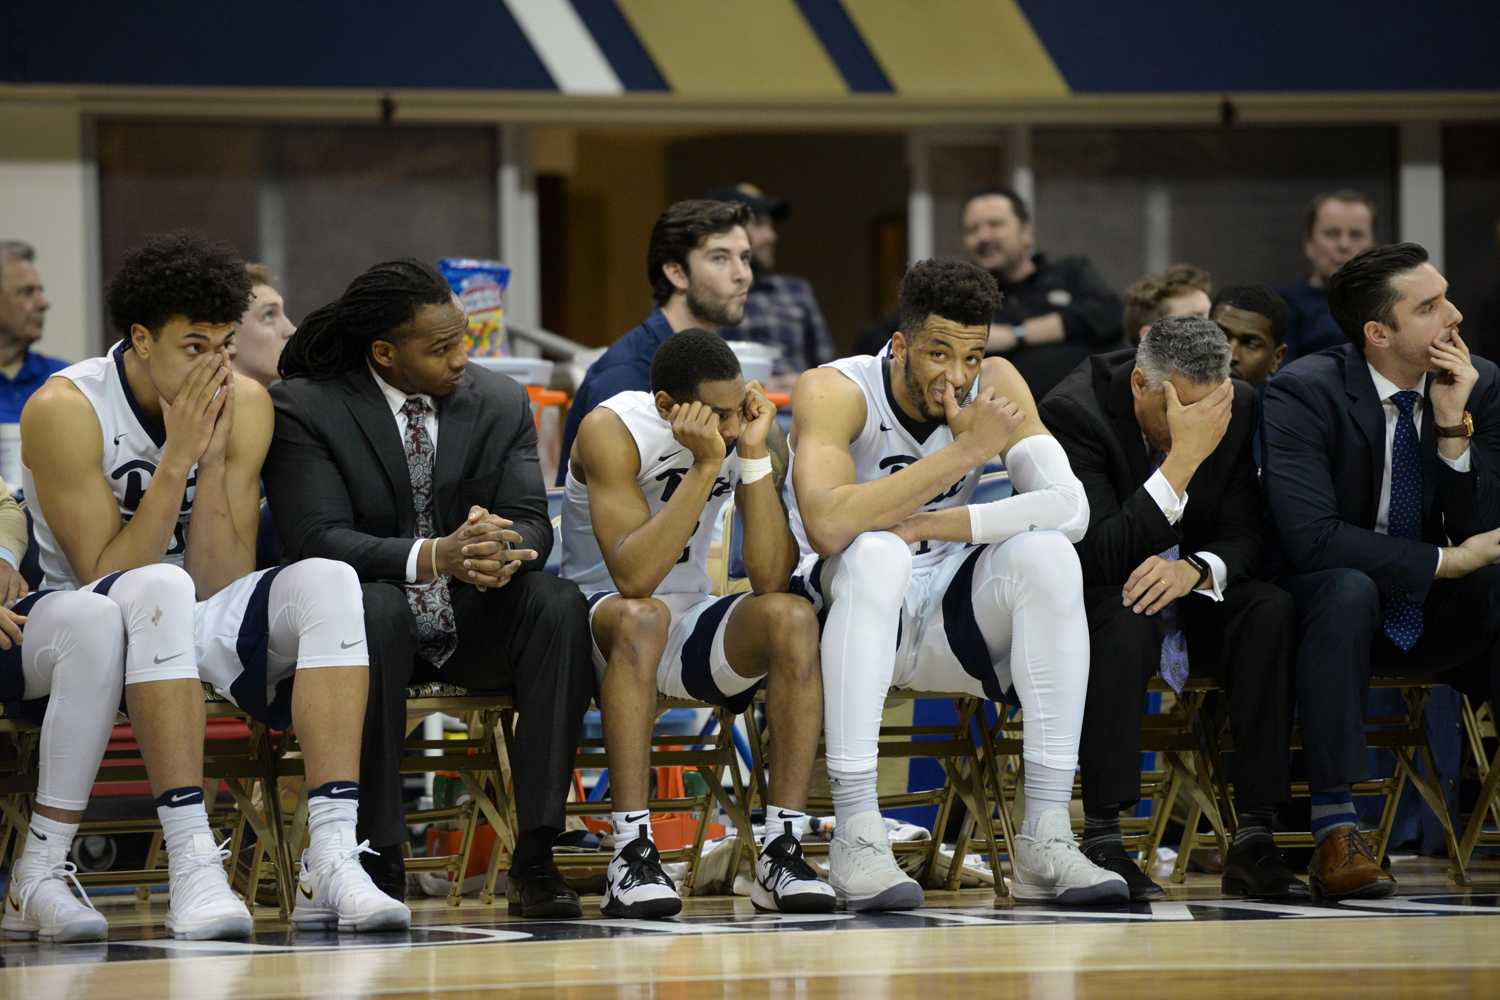 The 2017-18 season for Pitt men's basketball marks its worst since 1976-77. (Photo by Thomas Yang | Visual Editor)